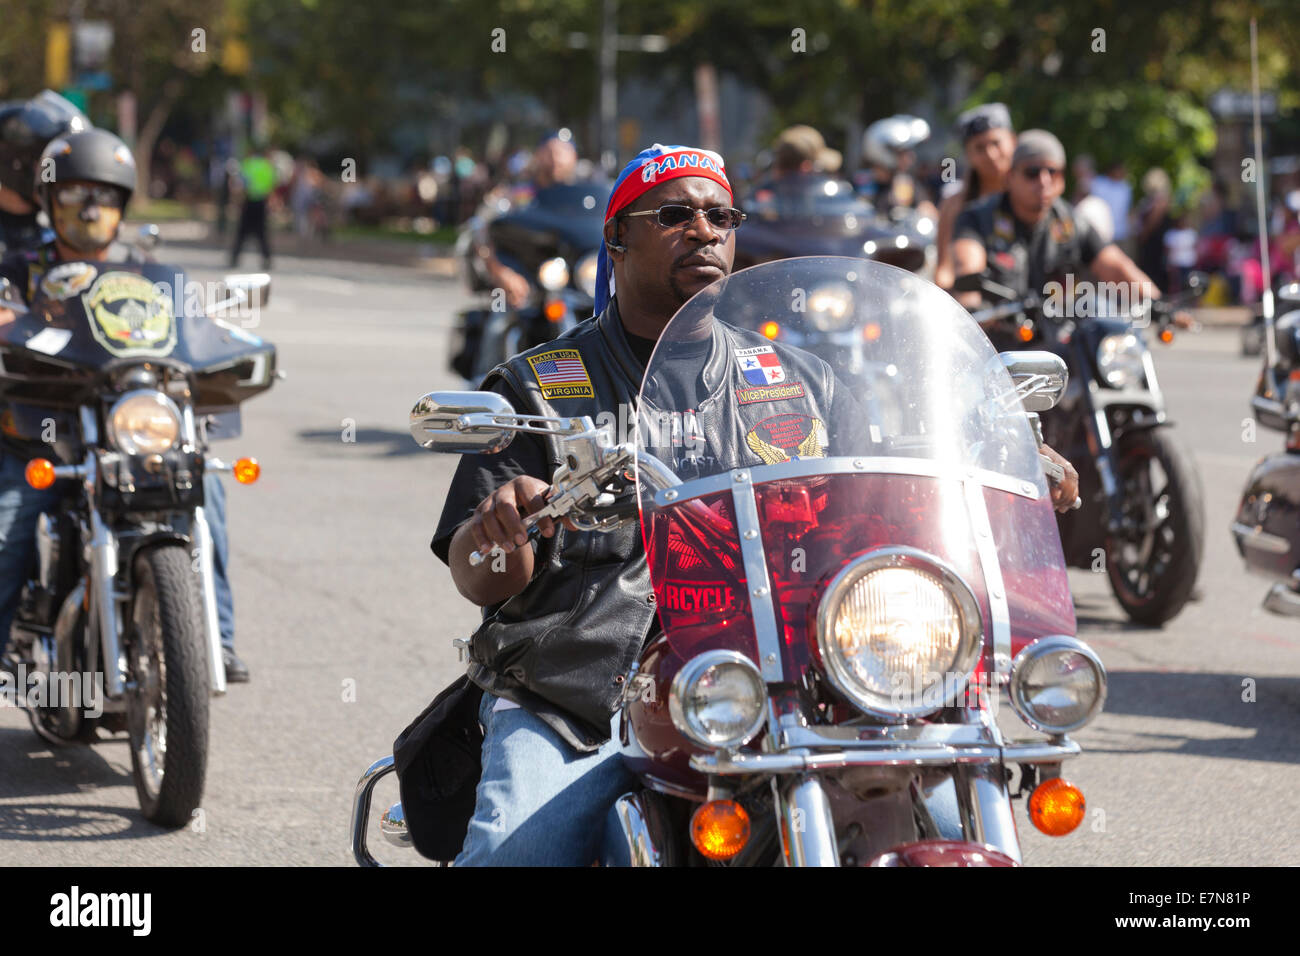 Motorcycle Club High Resolution Stock Photography and ...  |African American Harley Riders